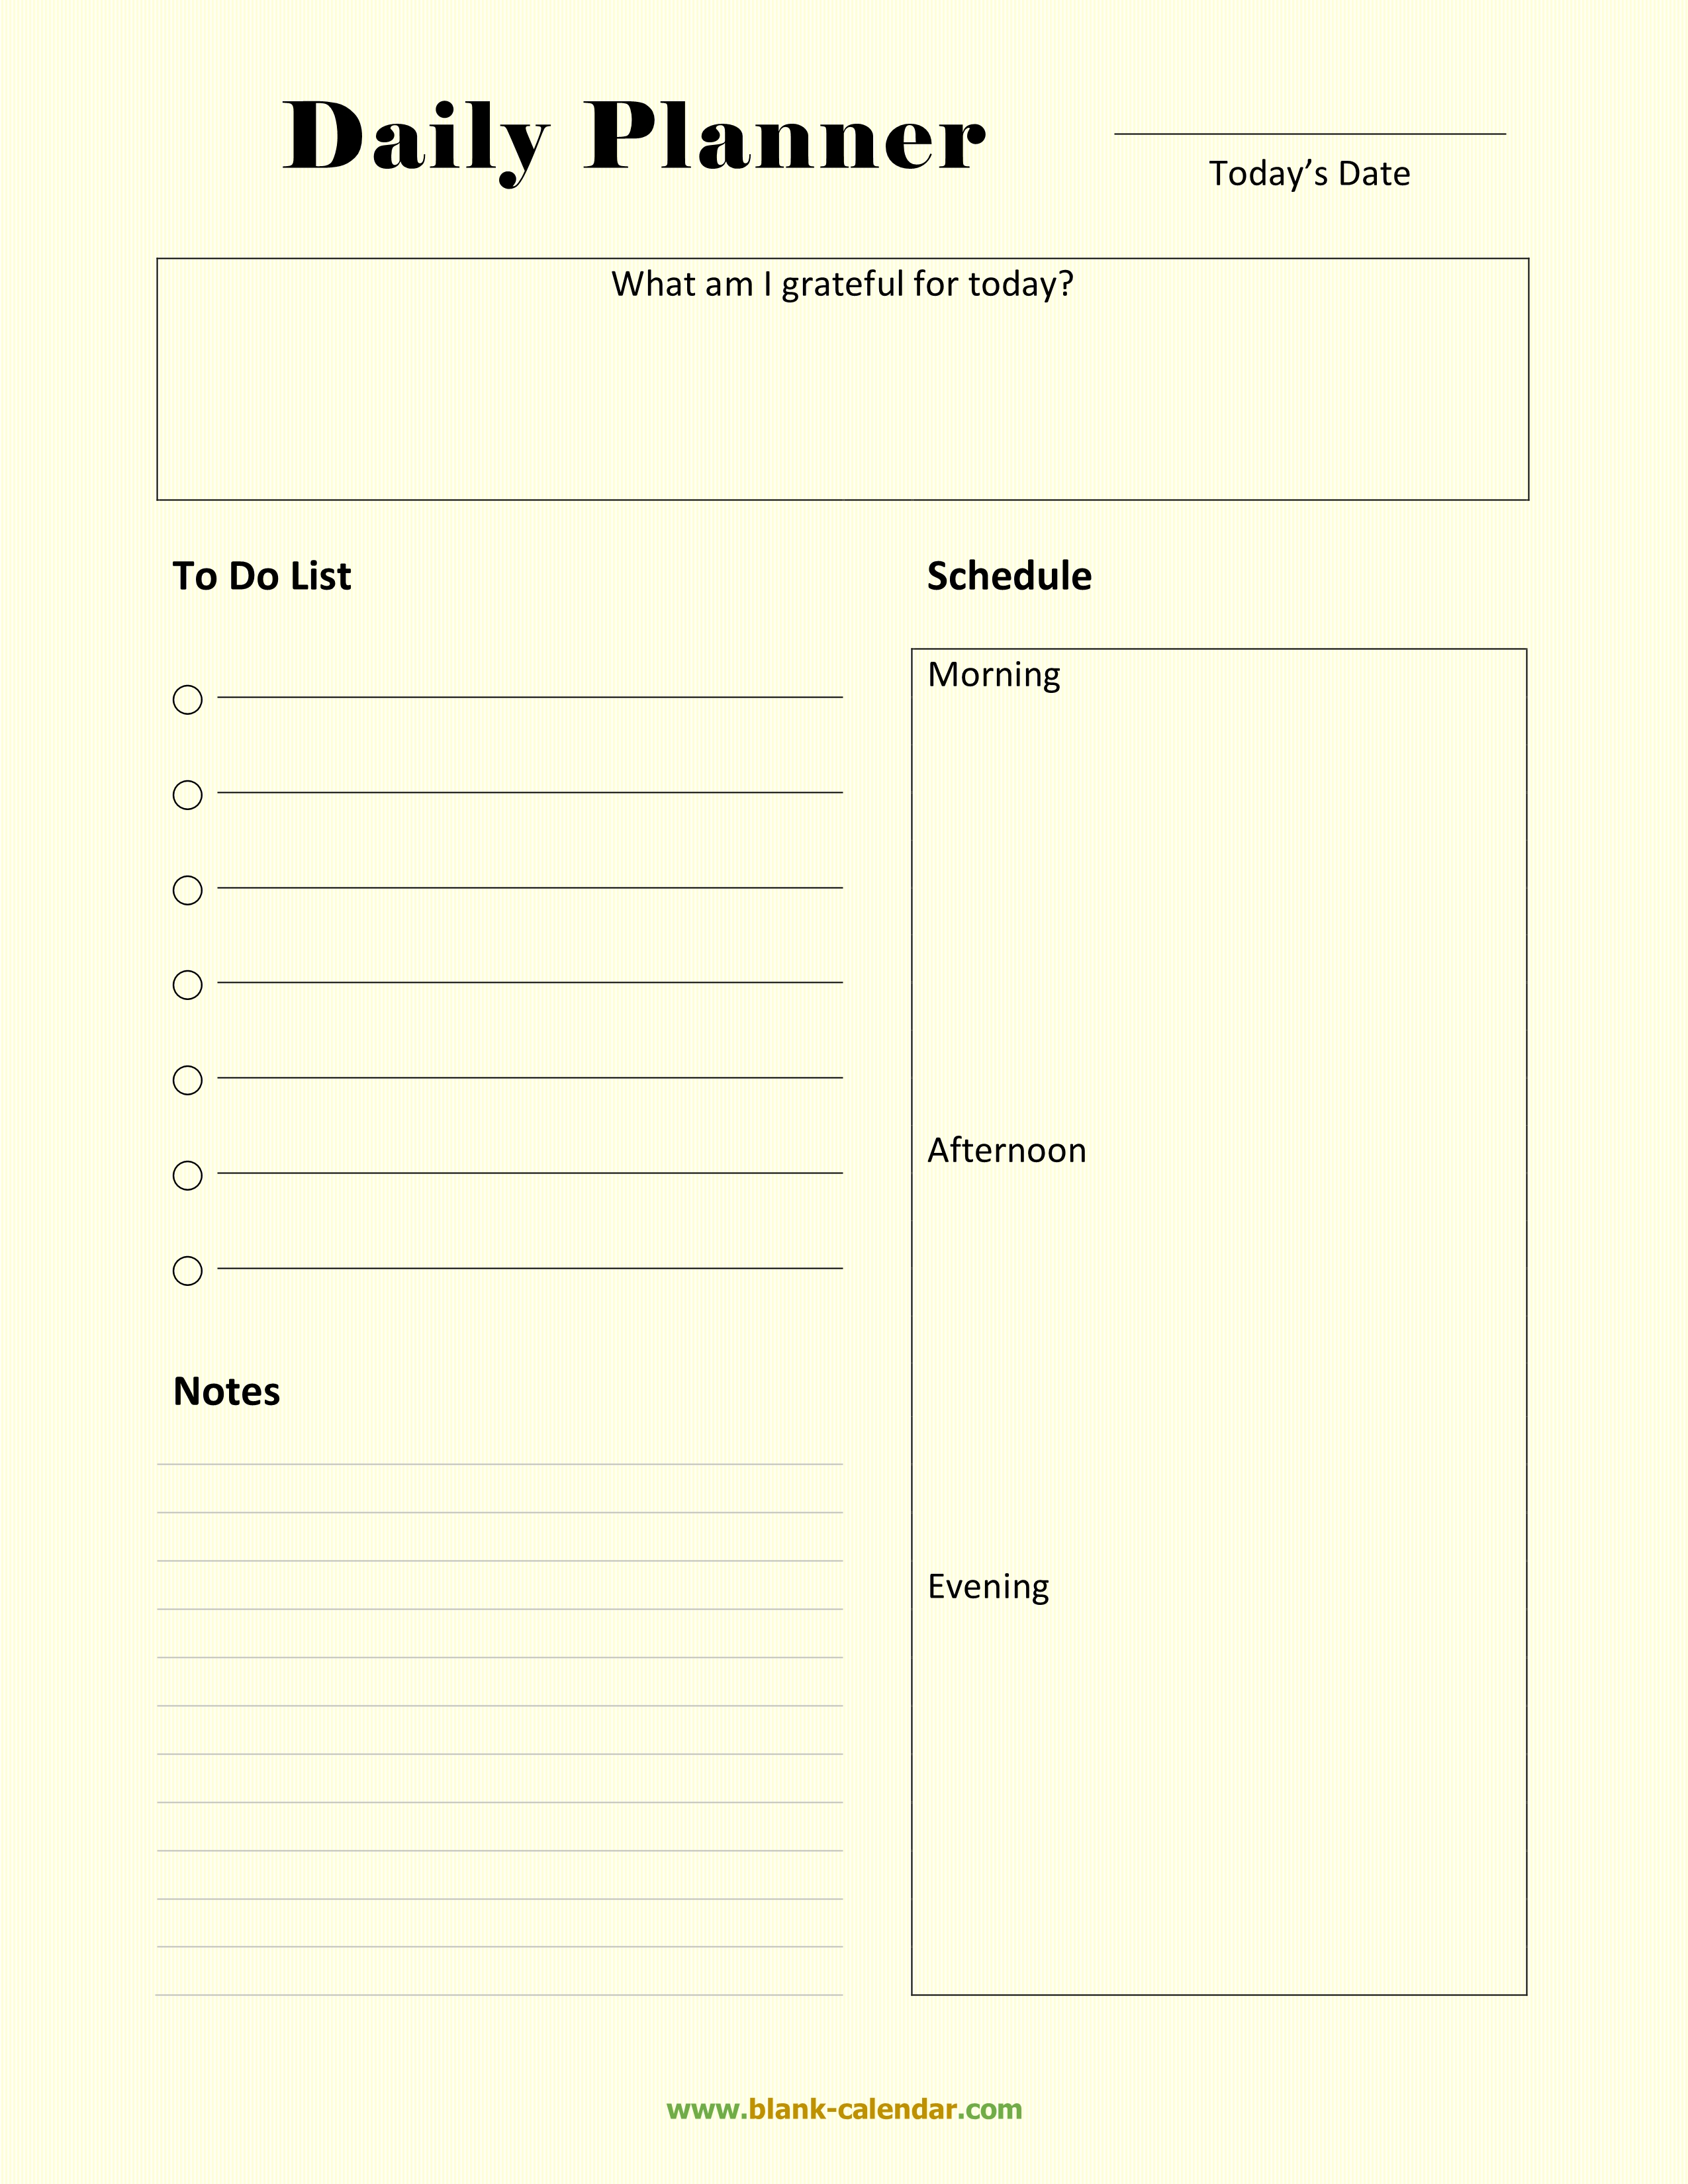 Daily Planner Templates (WORD, EXCEL, PDF)